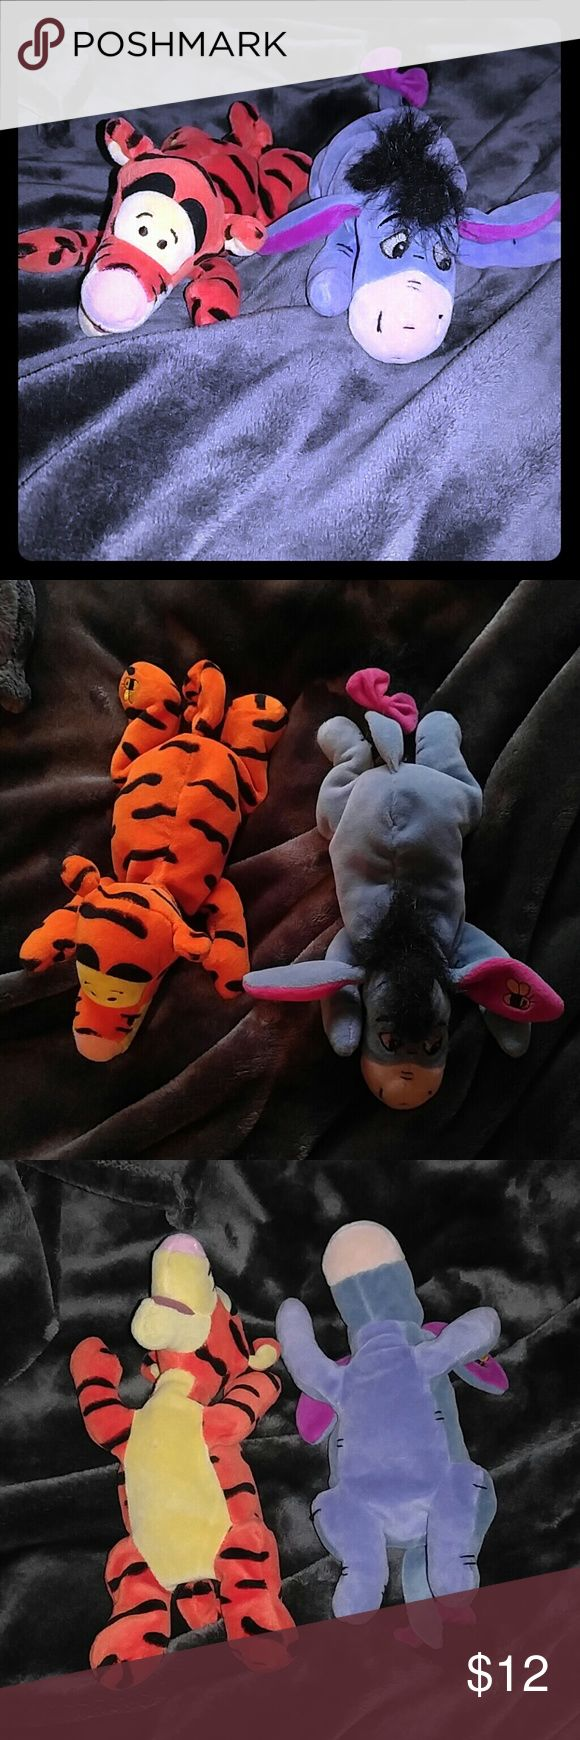 Tigger and Eeyore Disney Store plushies Disney store Tigger & Eeyore plushies, clean, excellent condition. The size of Beanie Babies. Smoke free home. Disney Other